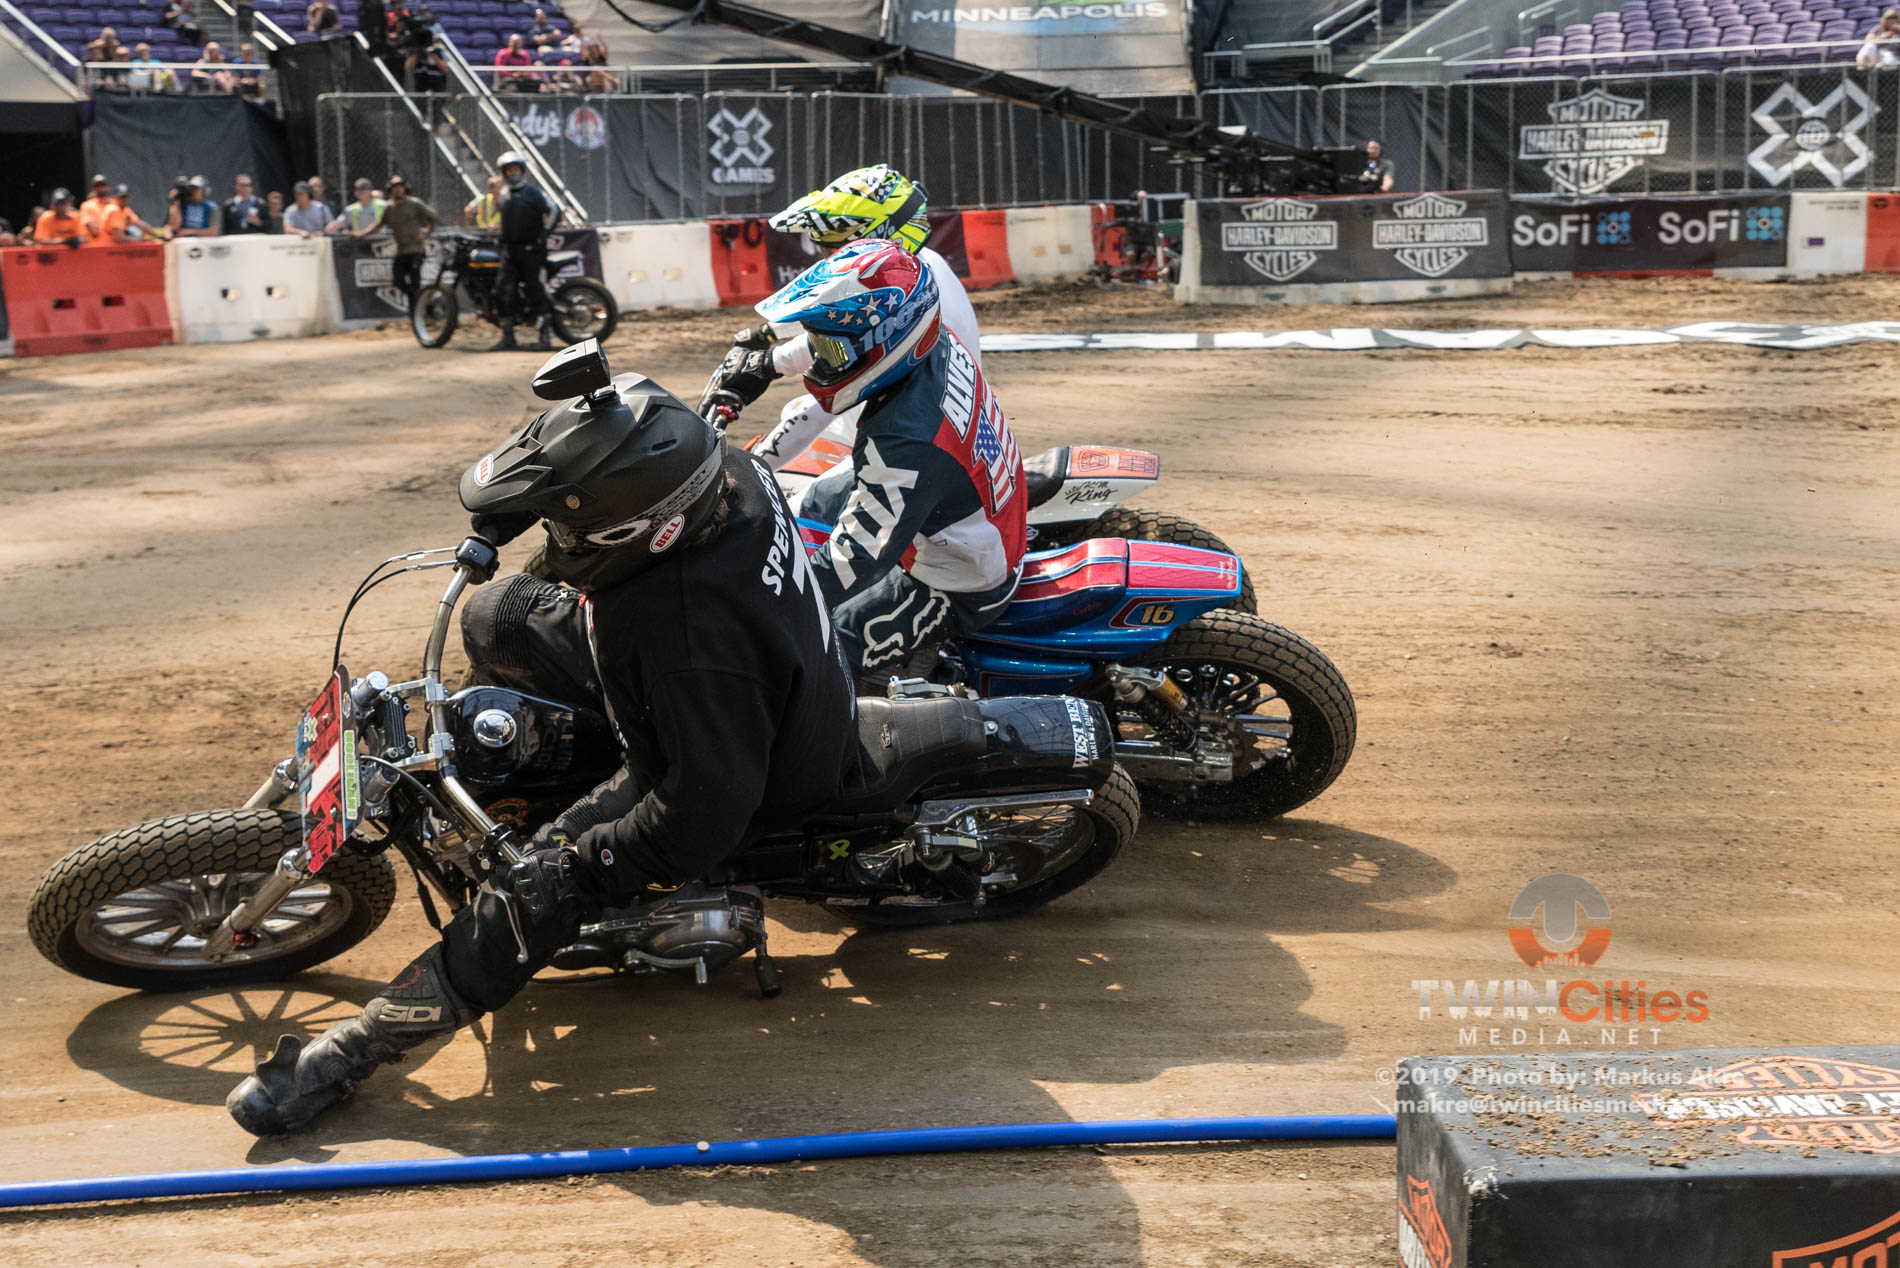 2019-X-Games-Day-4-Harley-Davidson-Hooligan-Racing-10